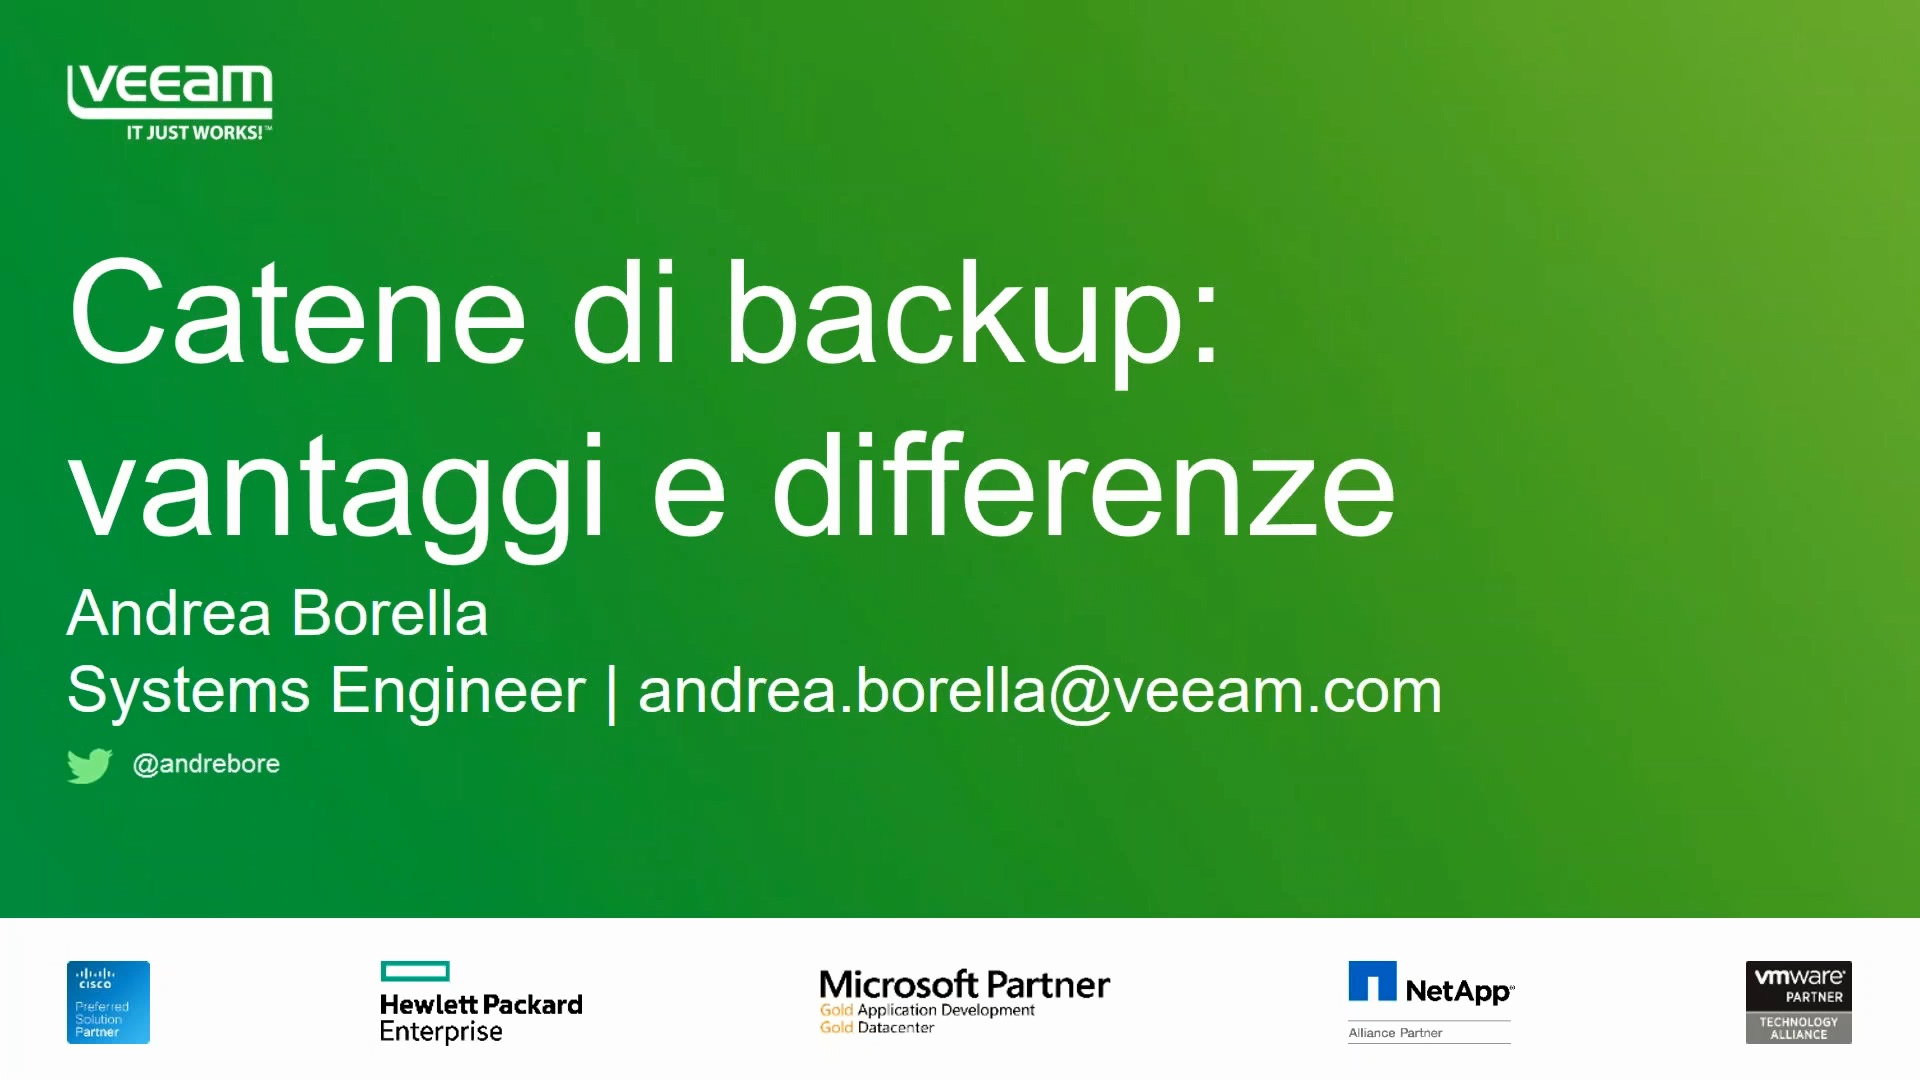 Pausa caffè con Veeam. Catene di backup: vantaggi e differenze